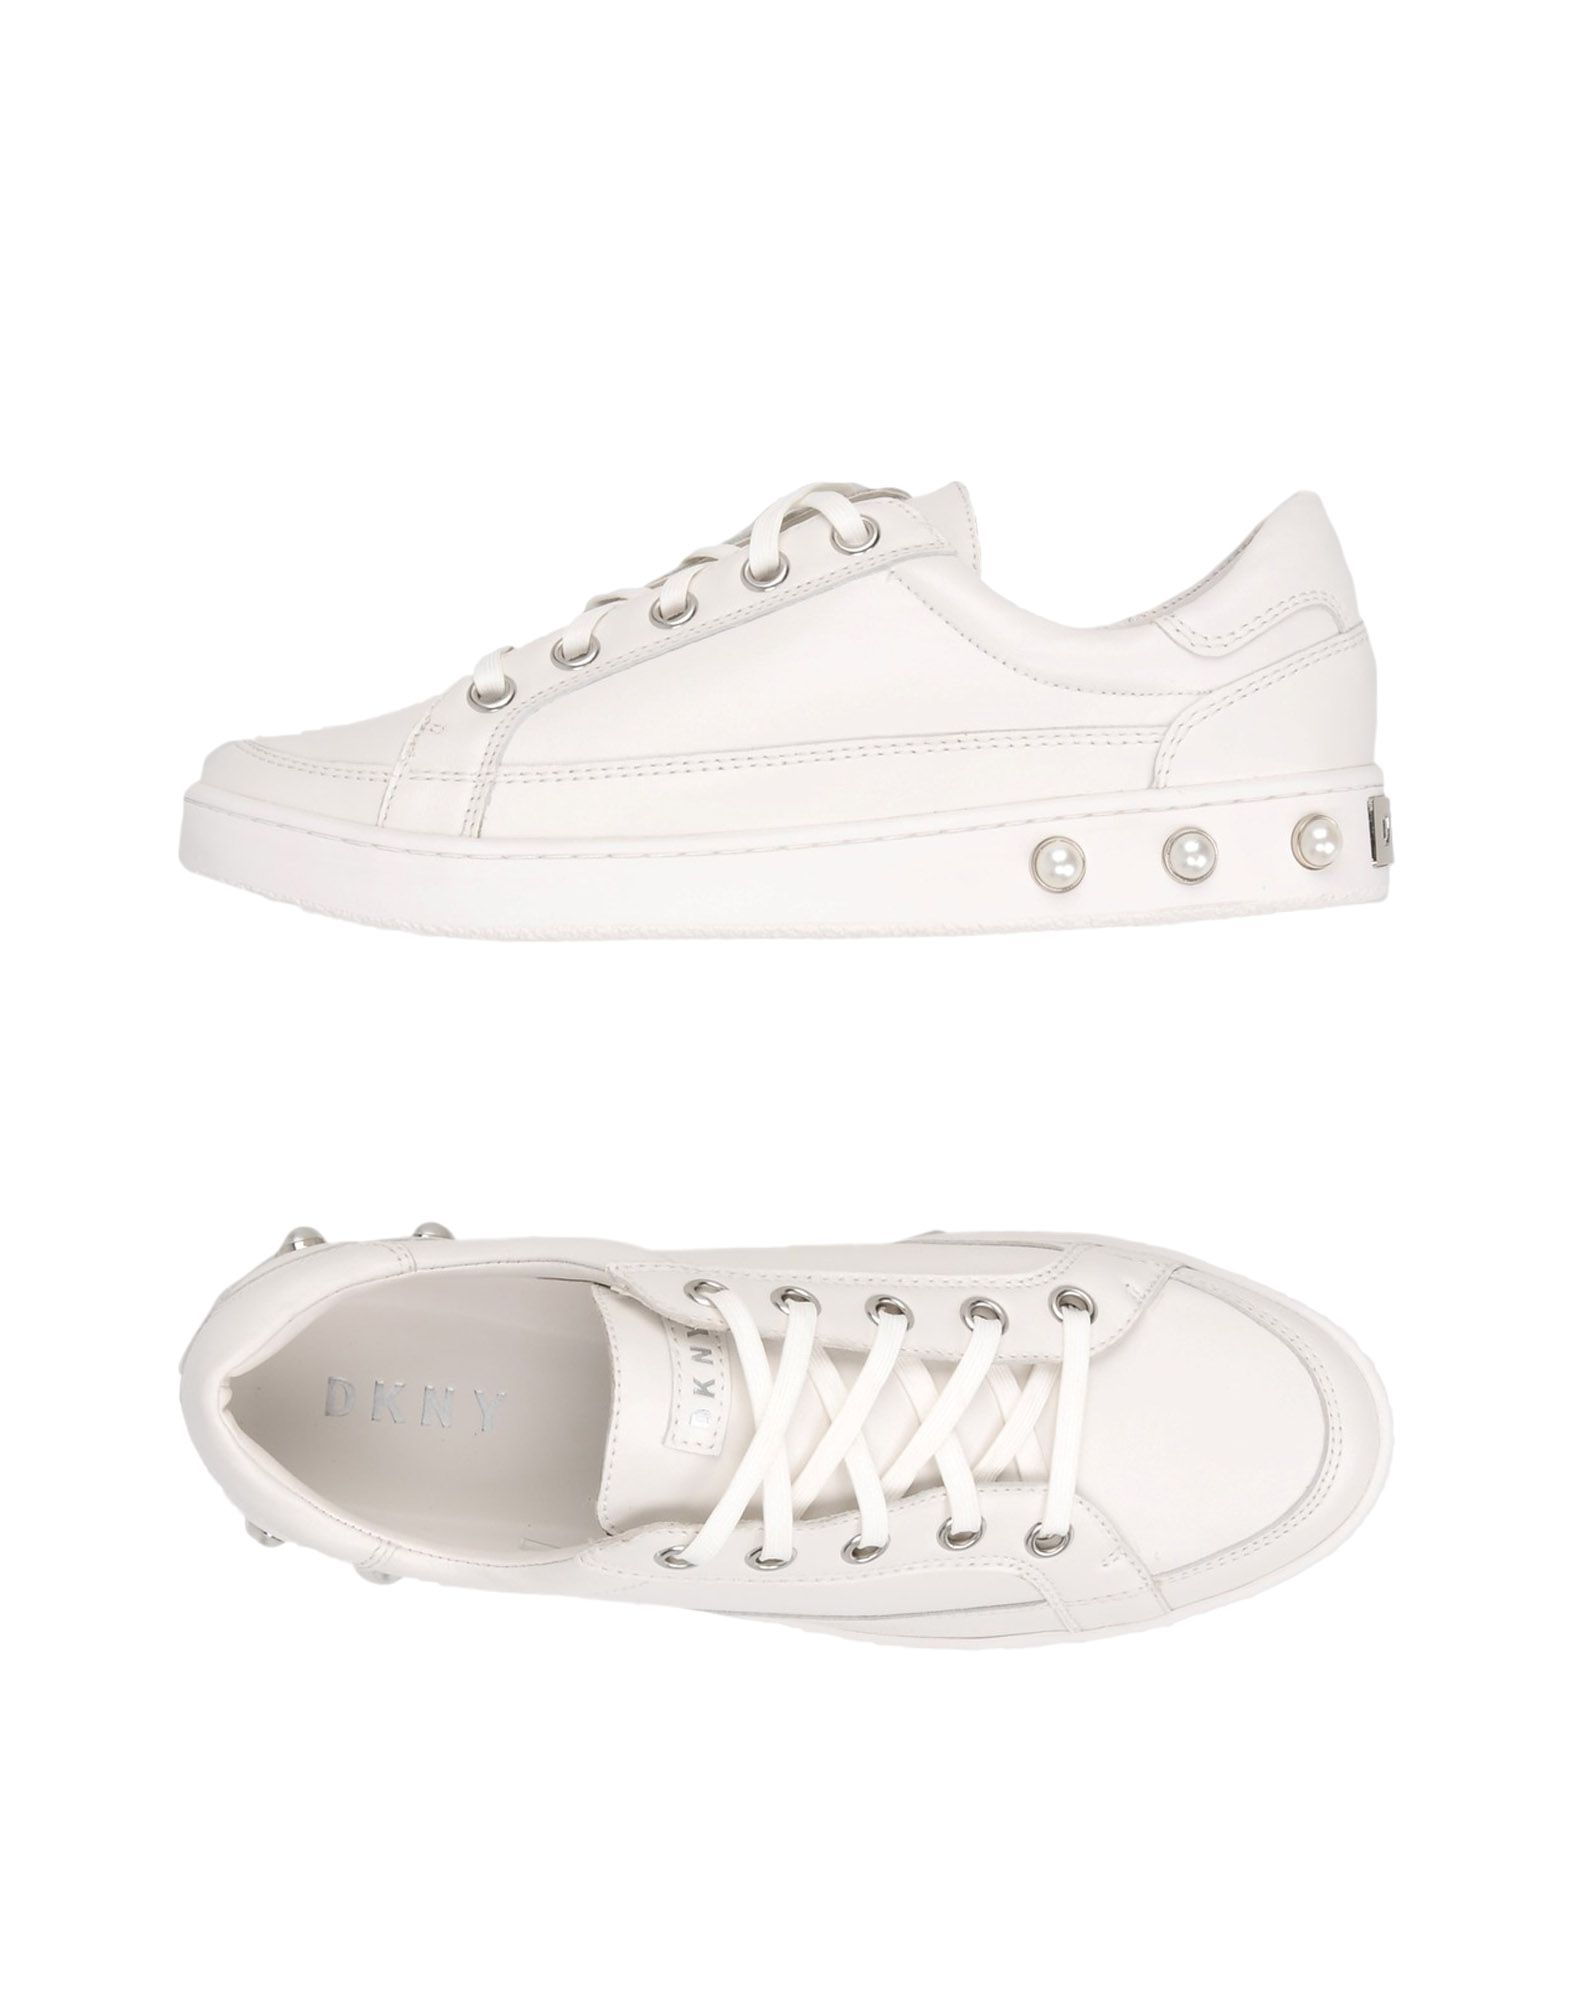 Sneakers Dkny Bali - Lace Up Sneak - Donna - 11428550QN